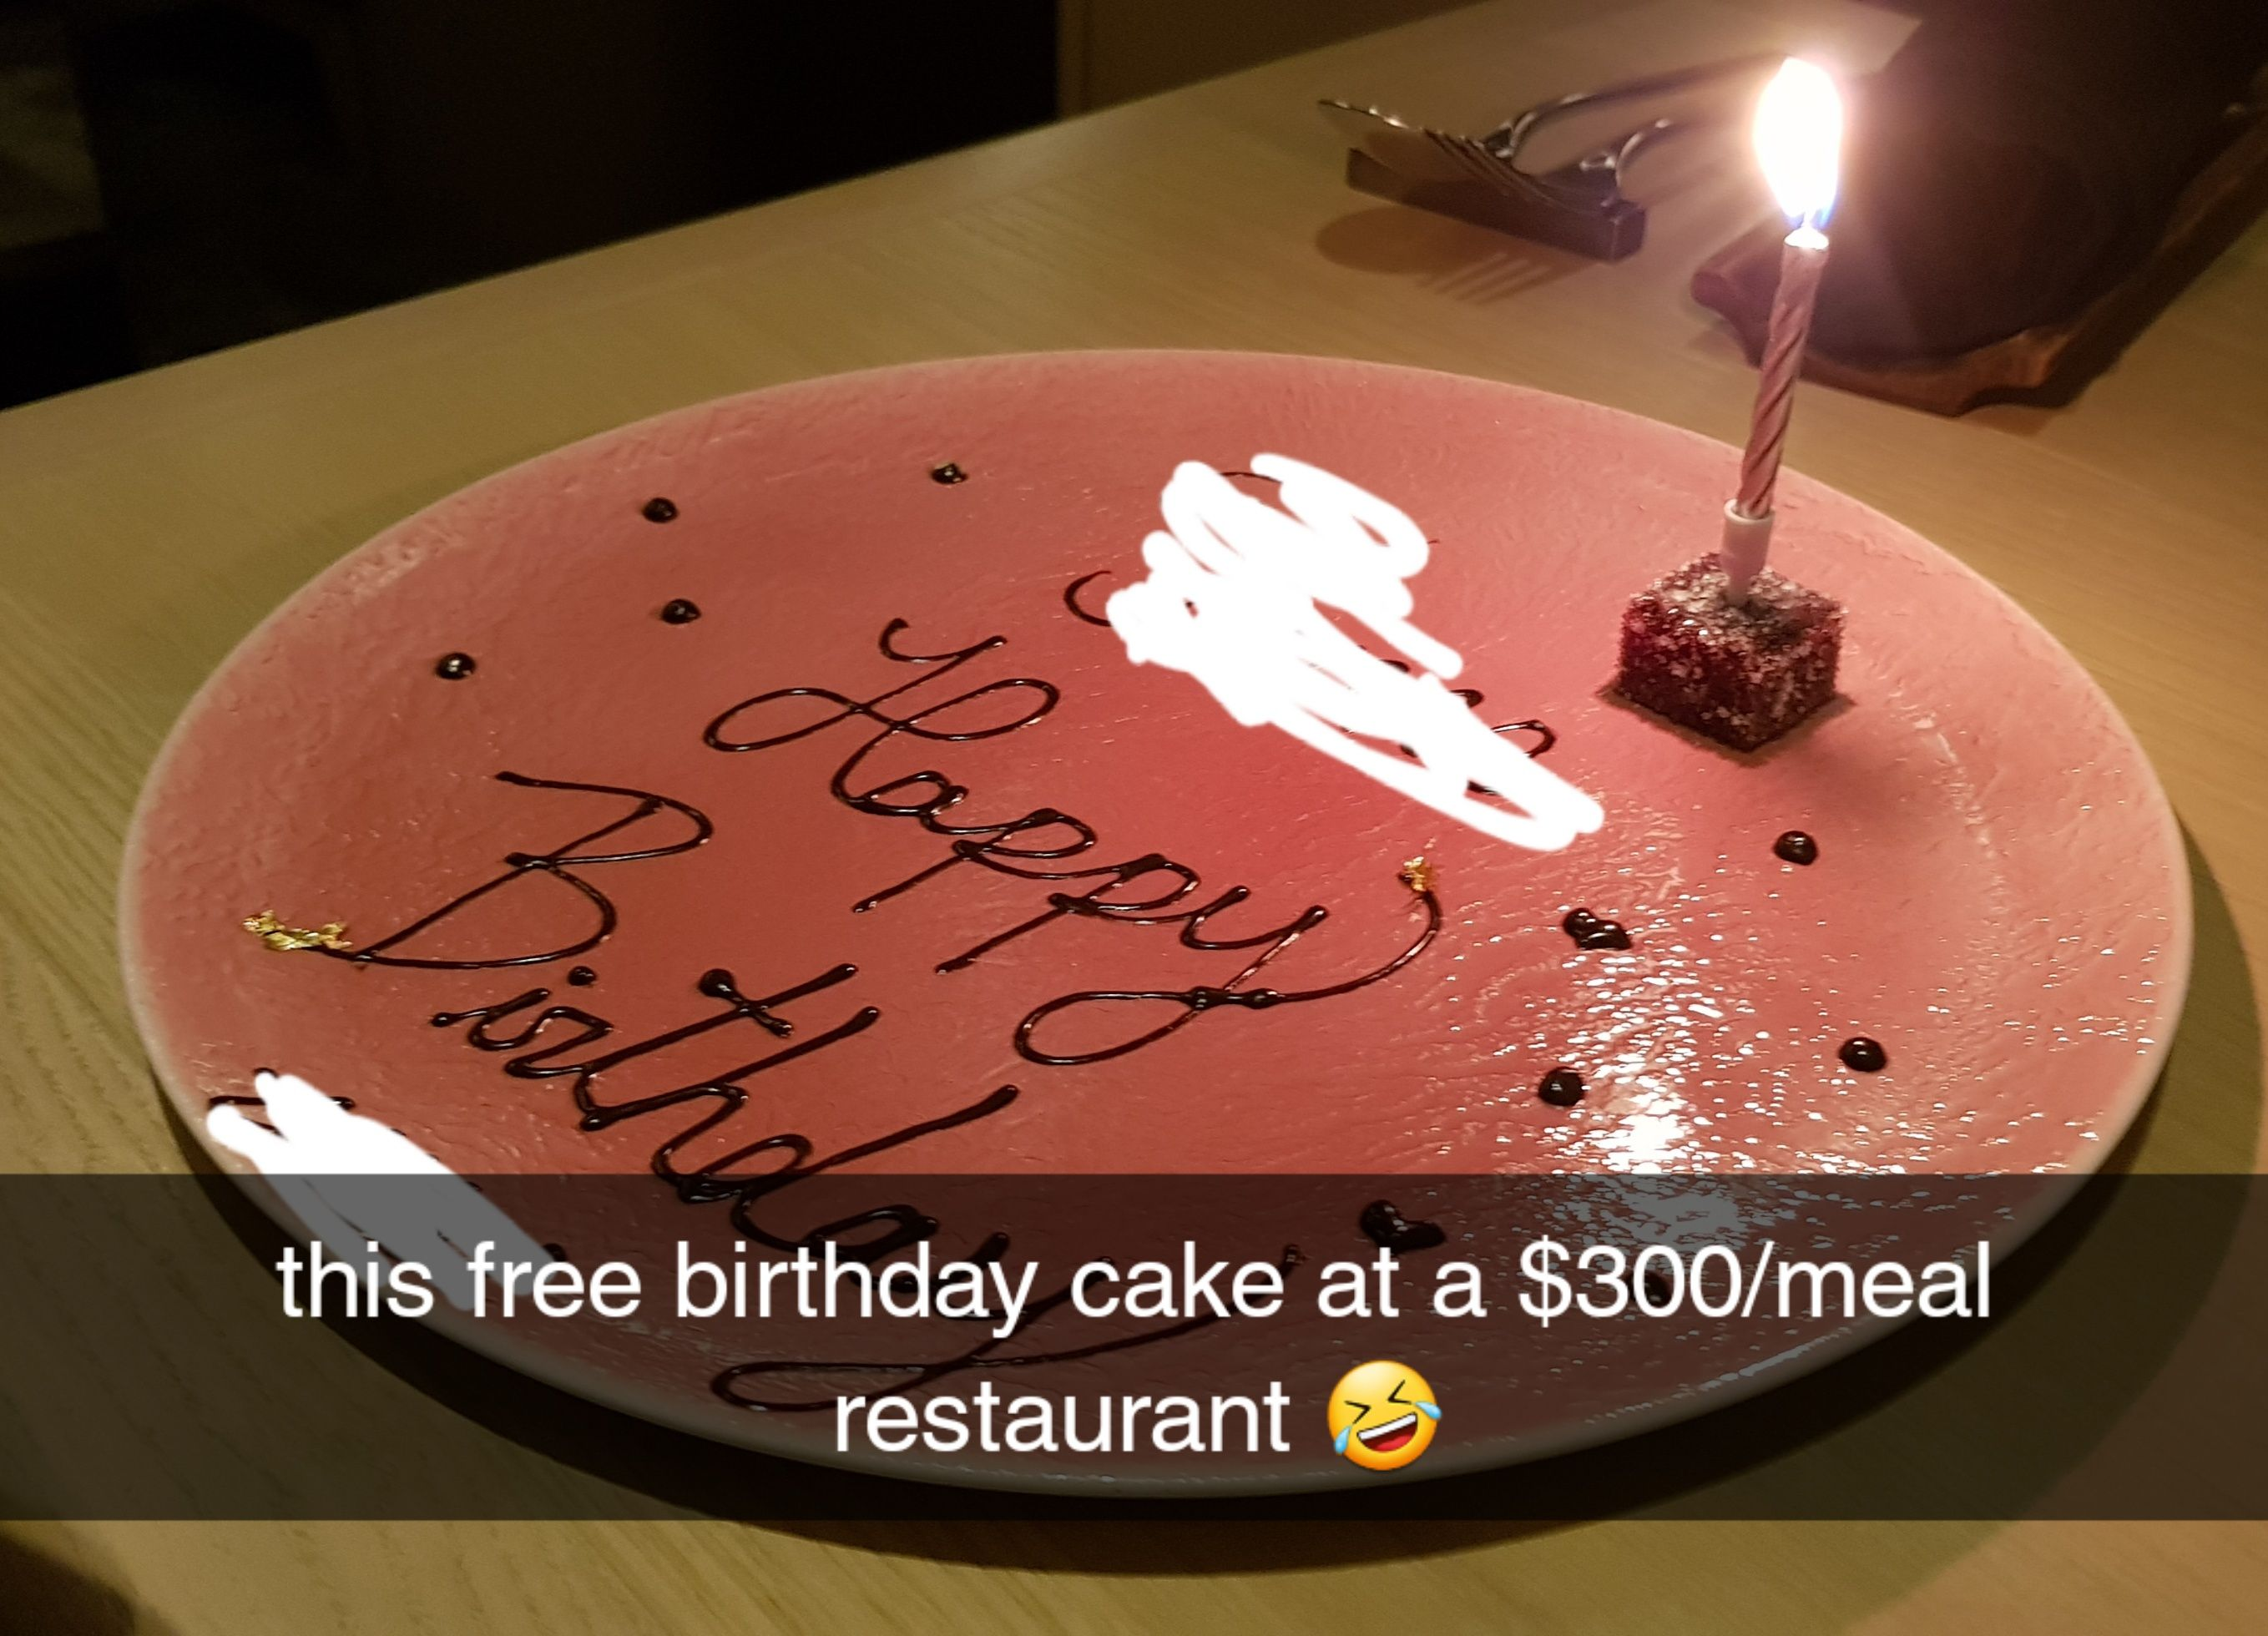 it's free, cant complain